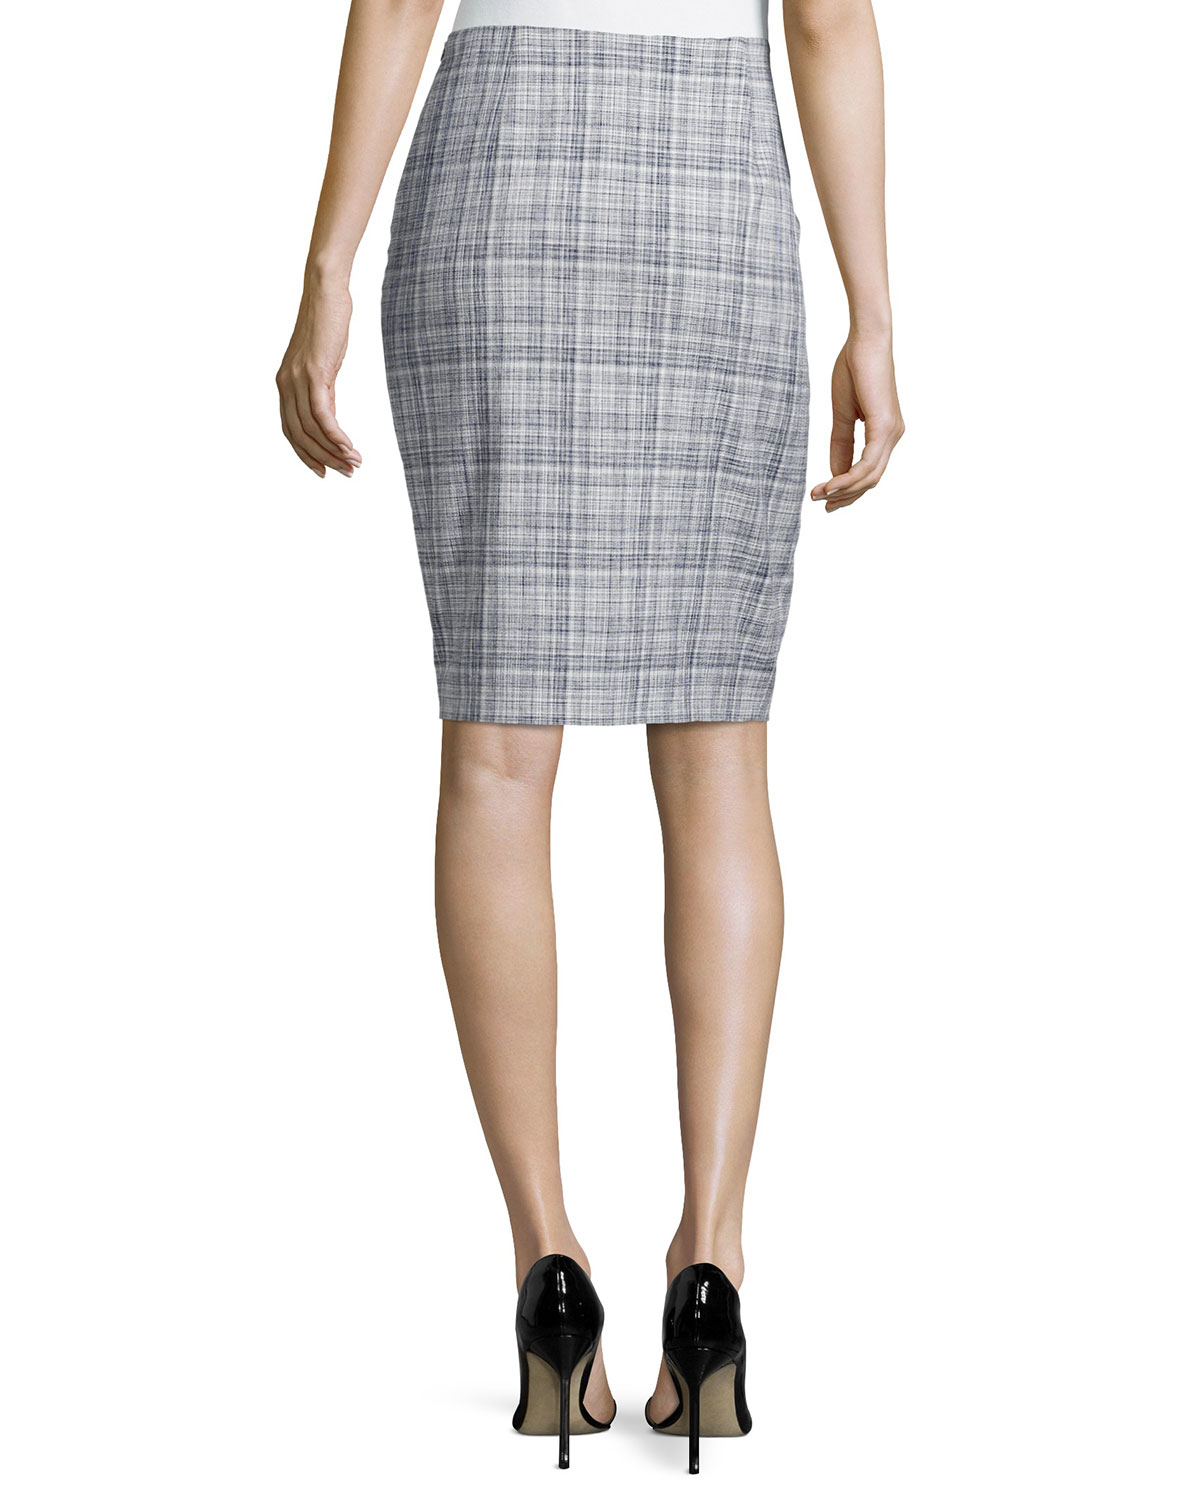 Escada Low-rise Pencil Skirt in Gray | Lyst